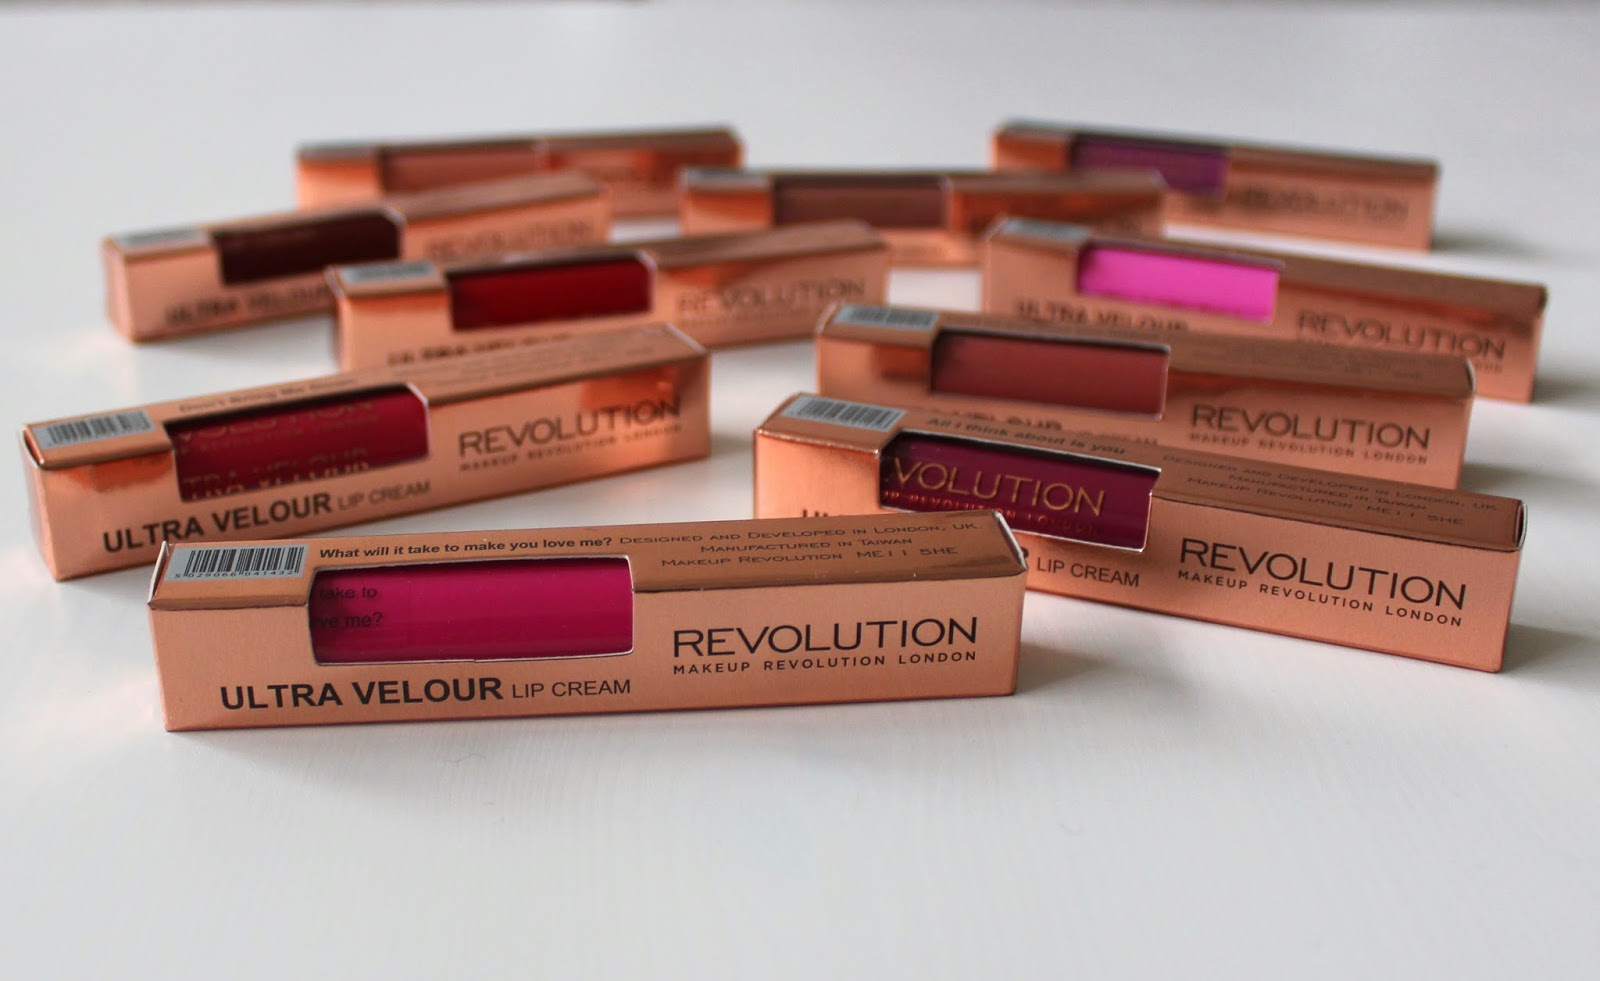 New from Makeup Revolution - Ultra Velour Lip Creams